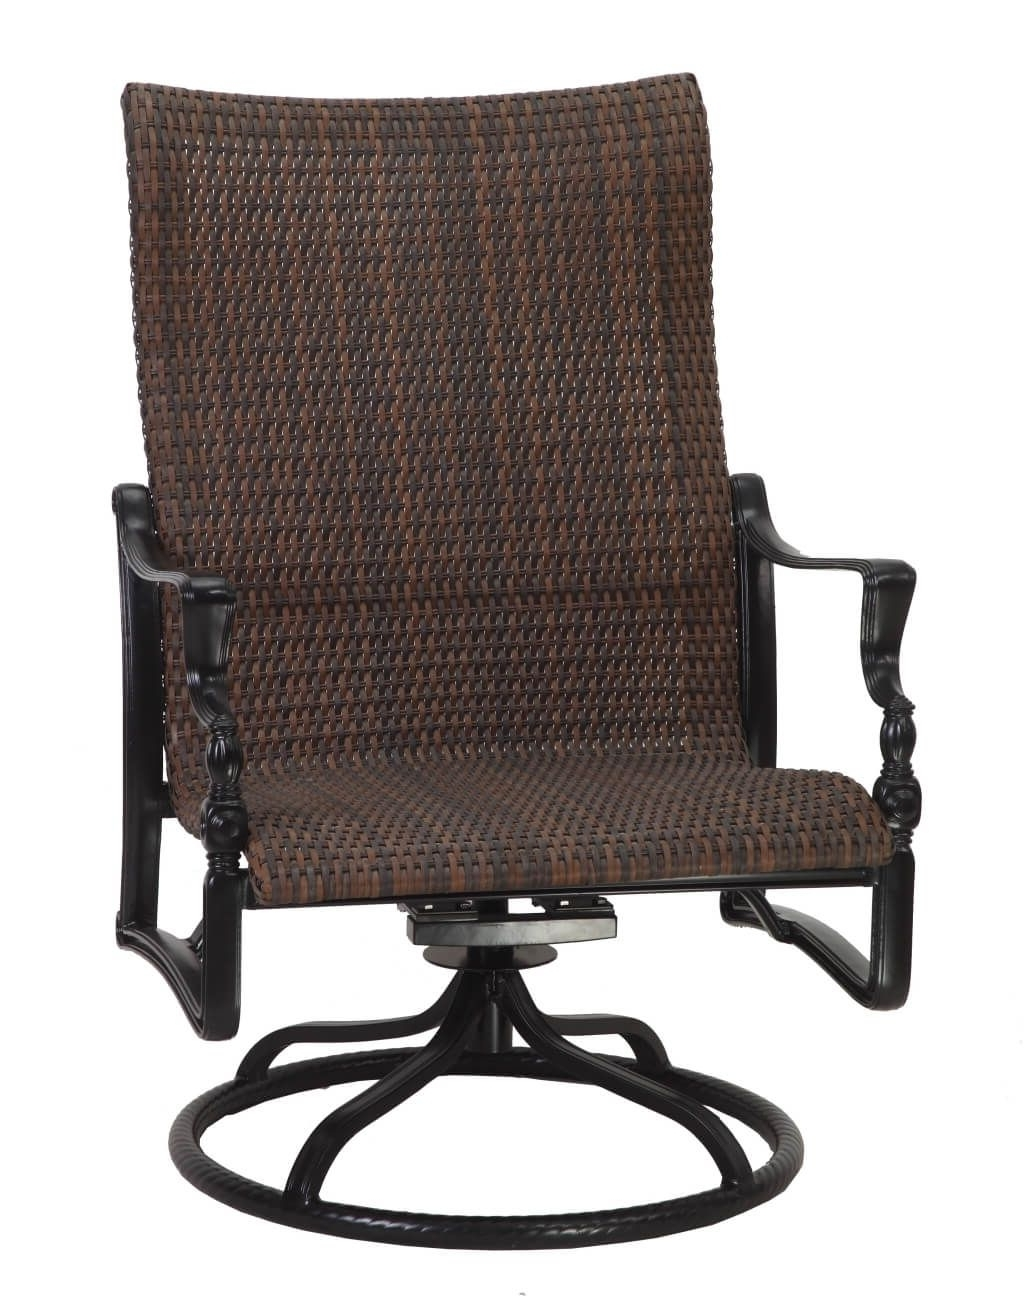 Recent Furniture: Exotic Swivel Rocker Wicker Chair Design For Outdoor Within Exotic Chaise Lounge Chairs (View 13 of 15)